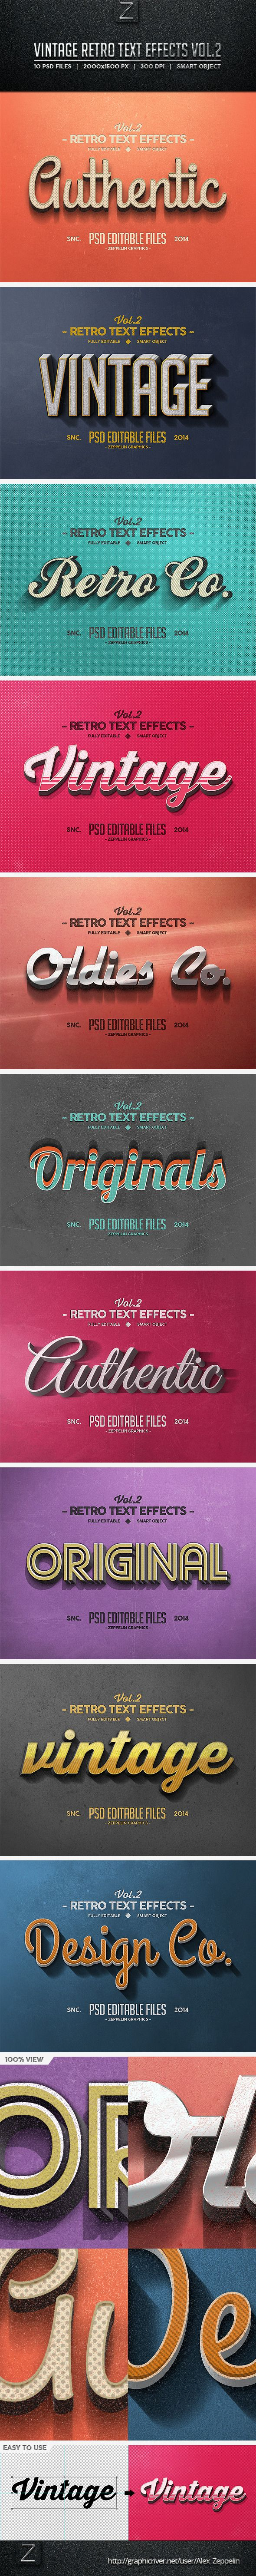 Vintage Text Effects Vol.2. Download here: http://graphicriver.net/item/vintage-text-effects-vol2/8540775?ref=ksioks